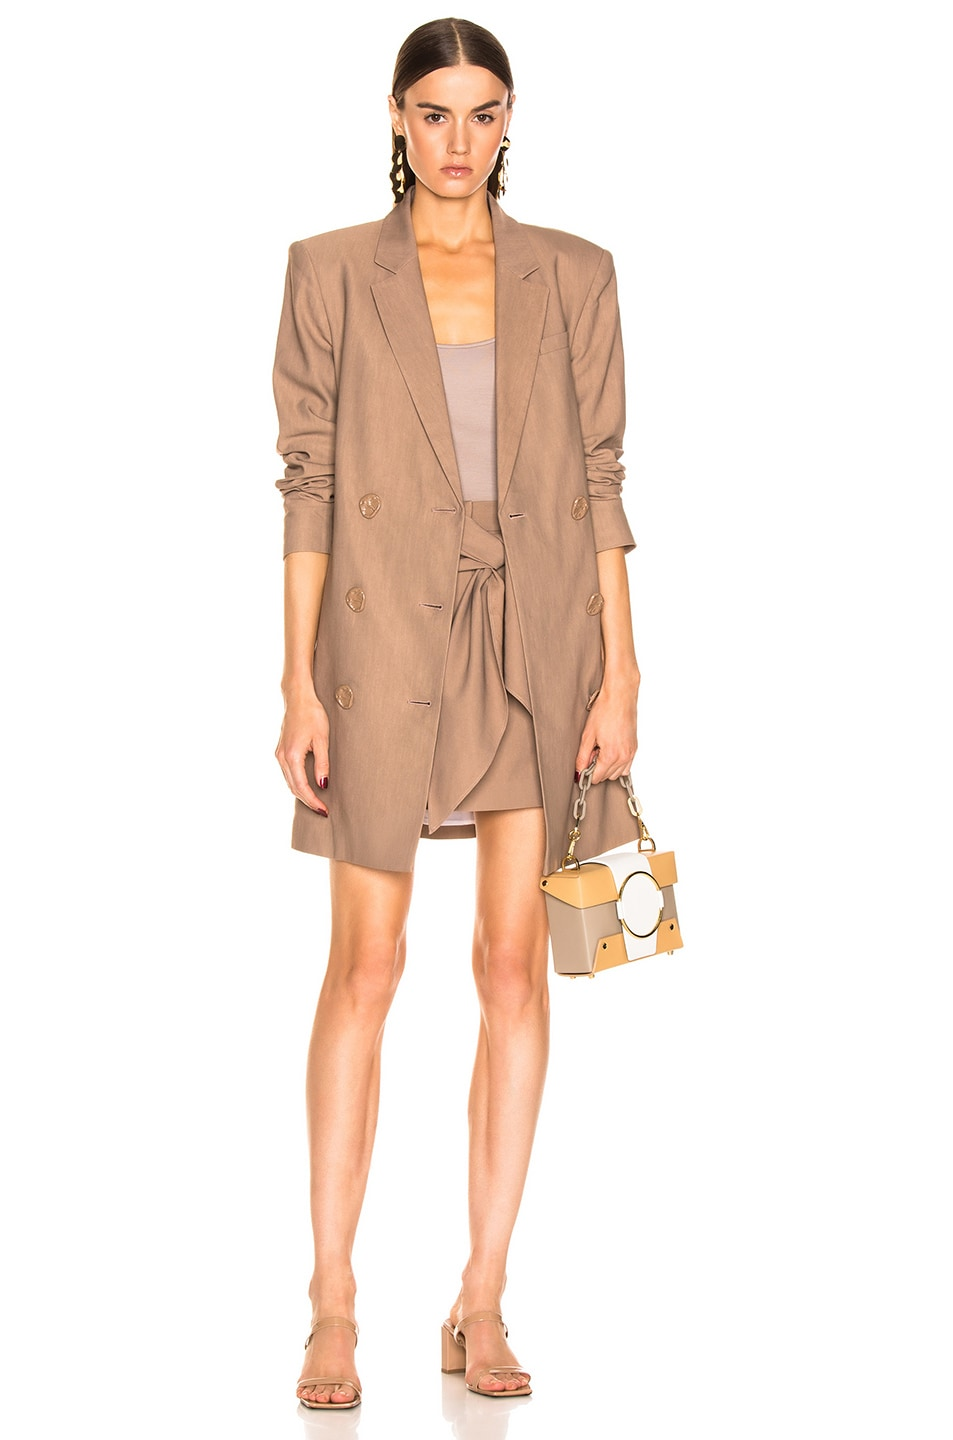 Image 5 of Tibi Linen Suiting Skirt with Detachable Top in Sable Brown